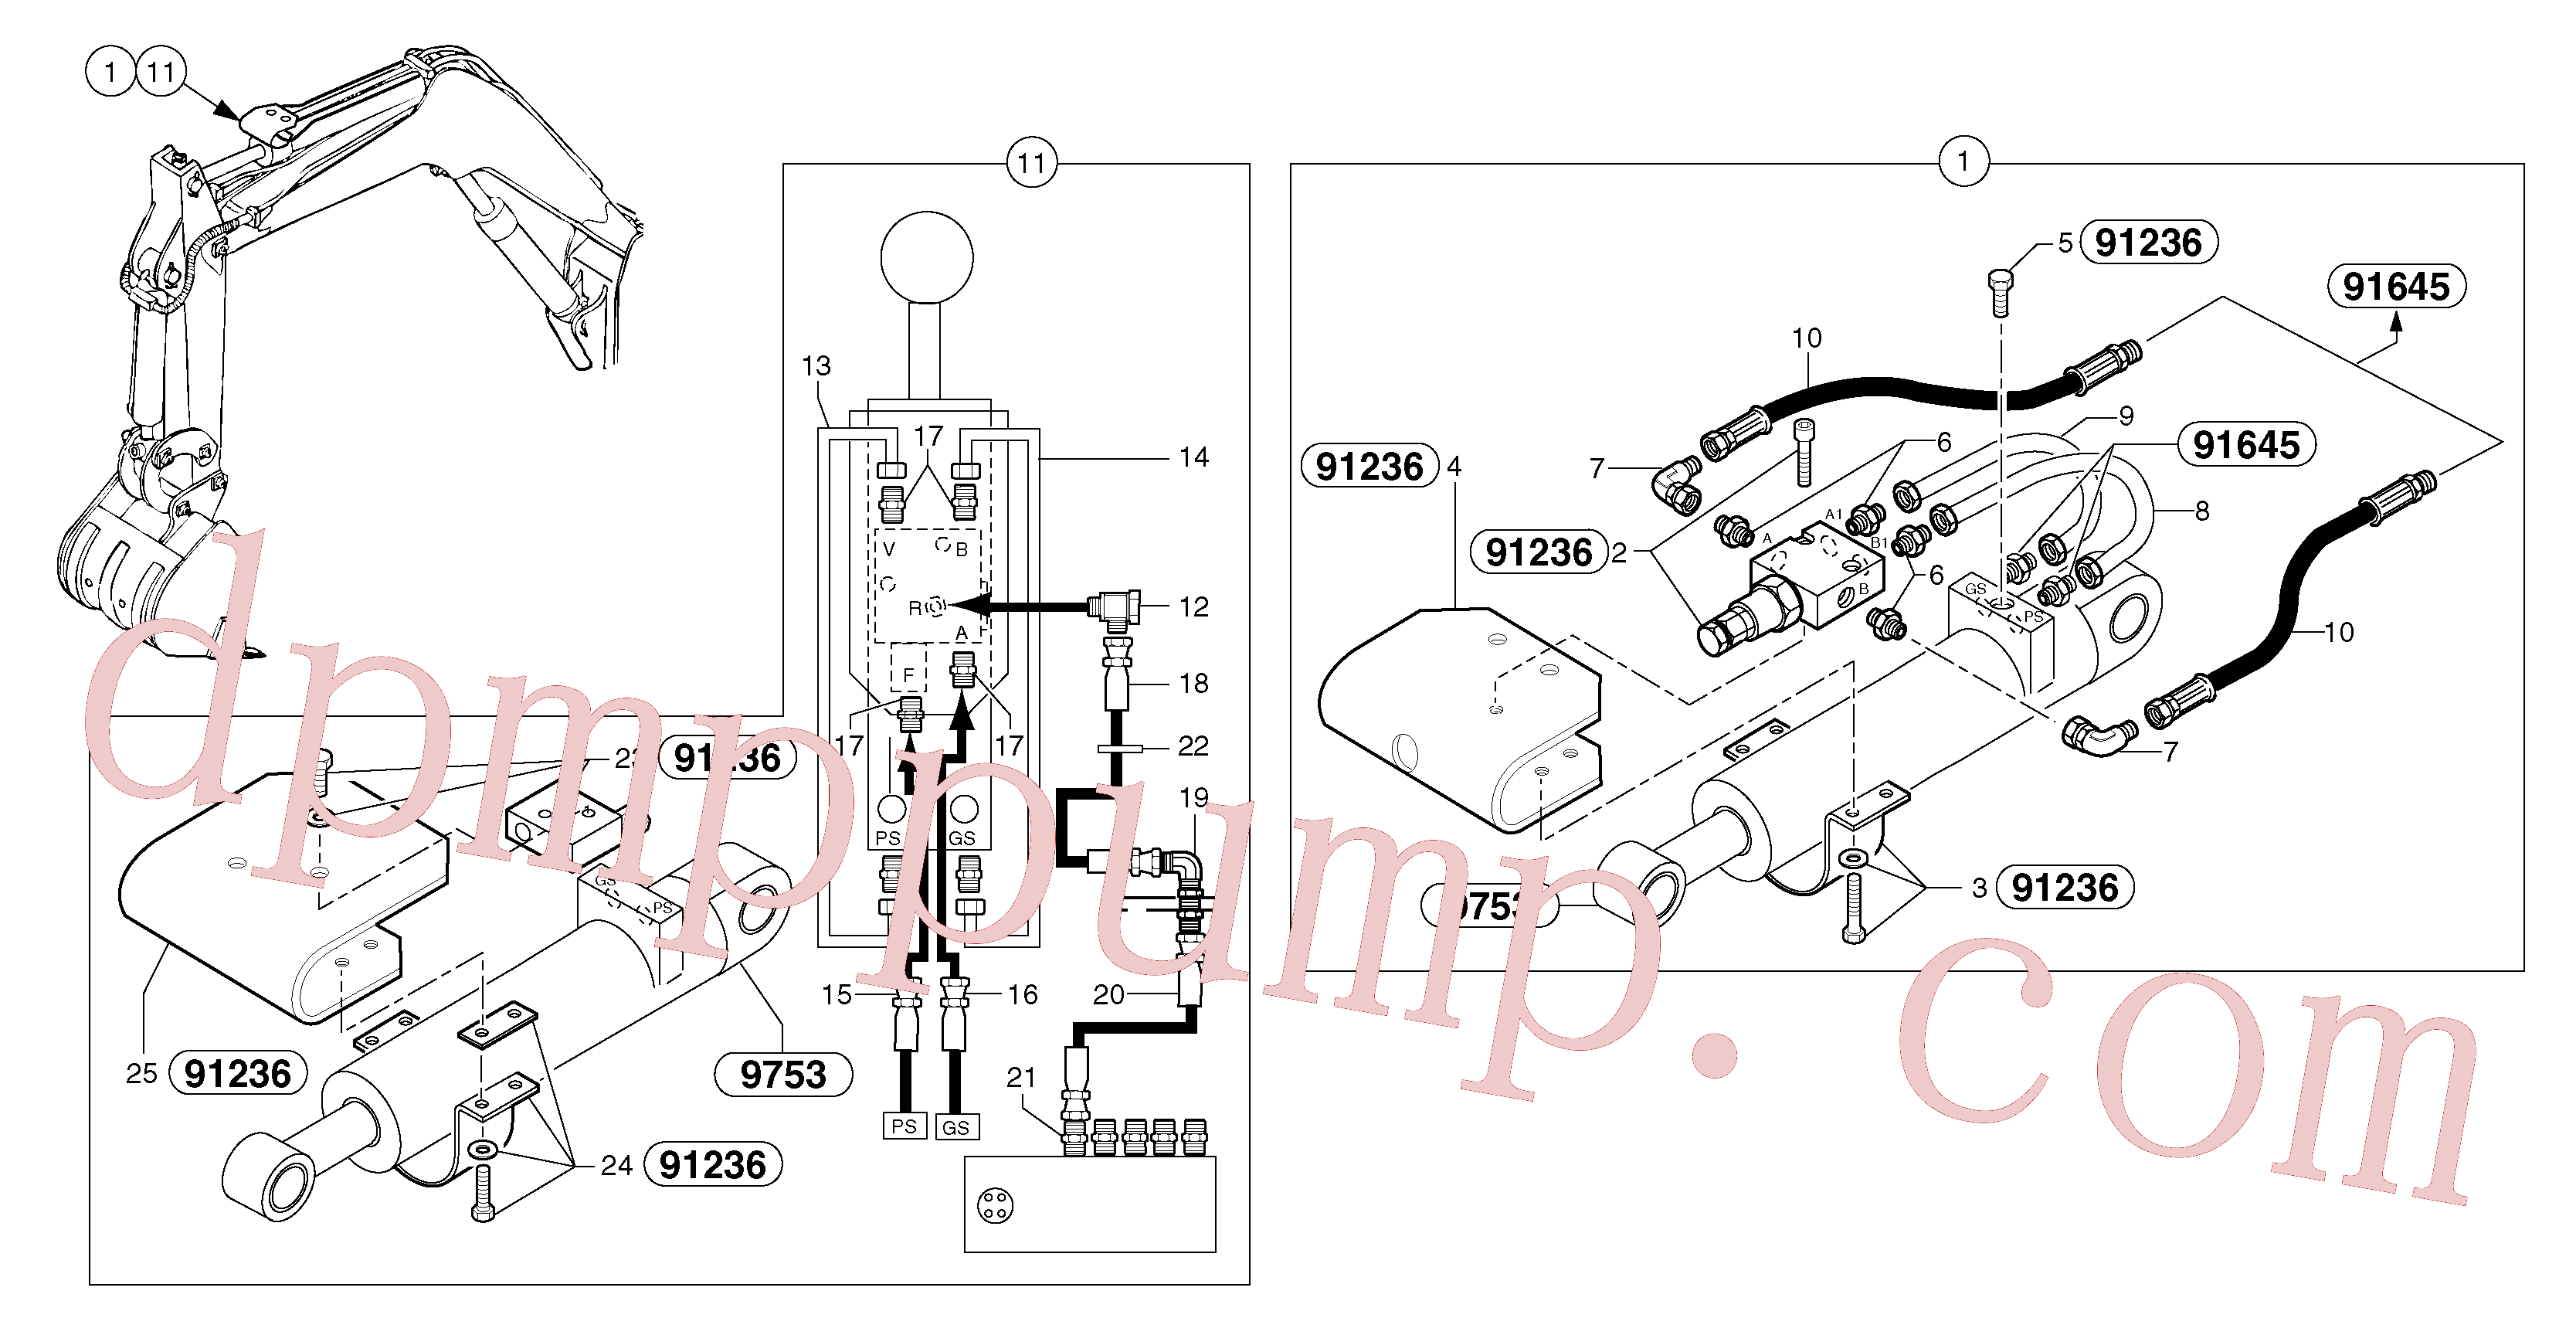 PJ5910720 for Volvo Hydraulic circuit ( safety valve / dipper arm )(91649X1 assembly)